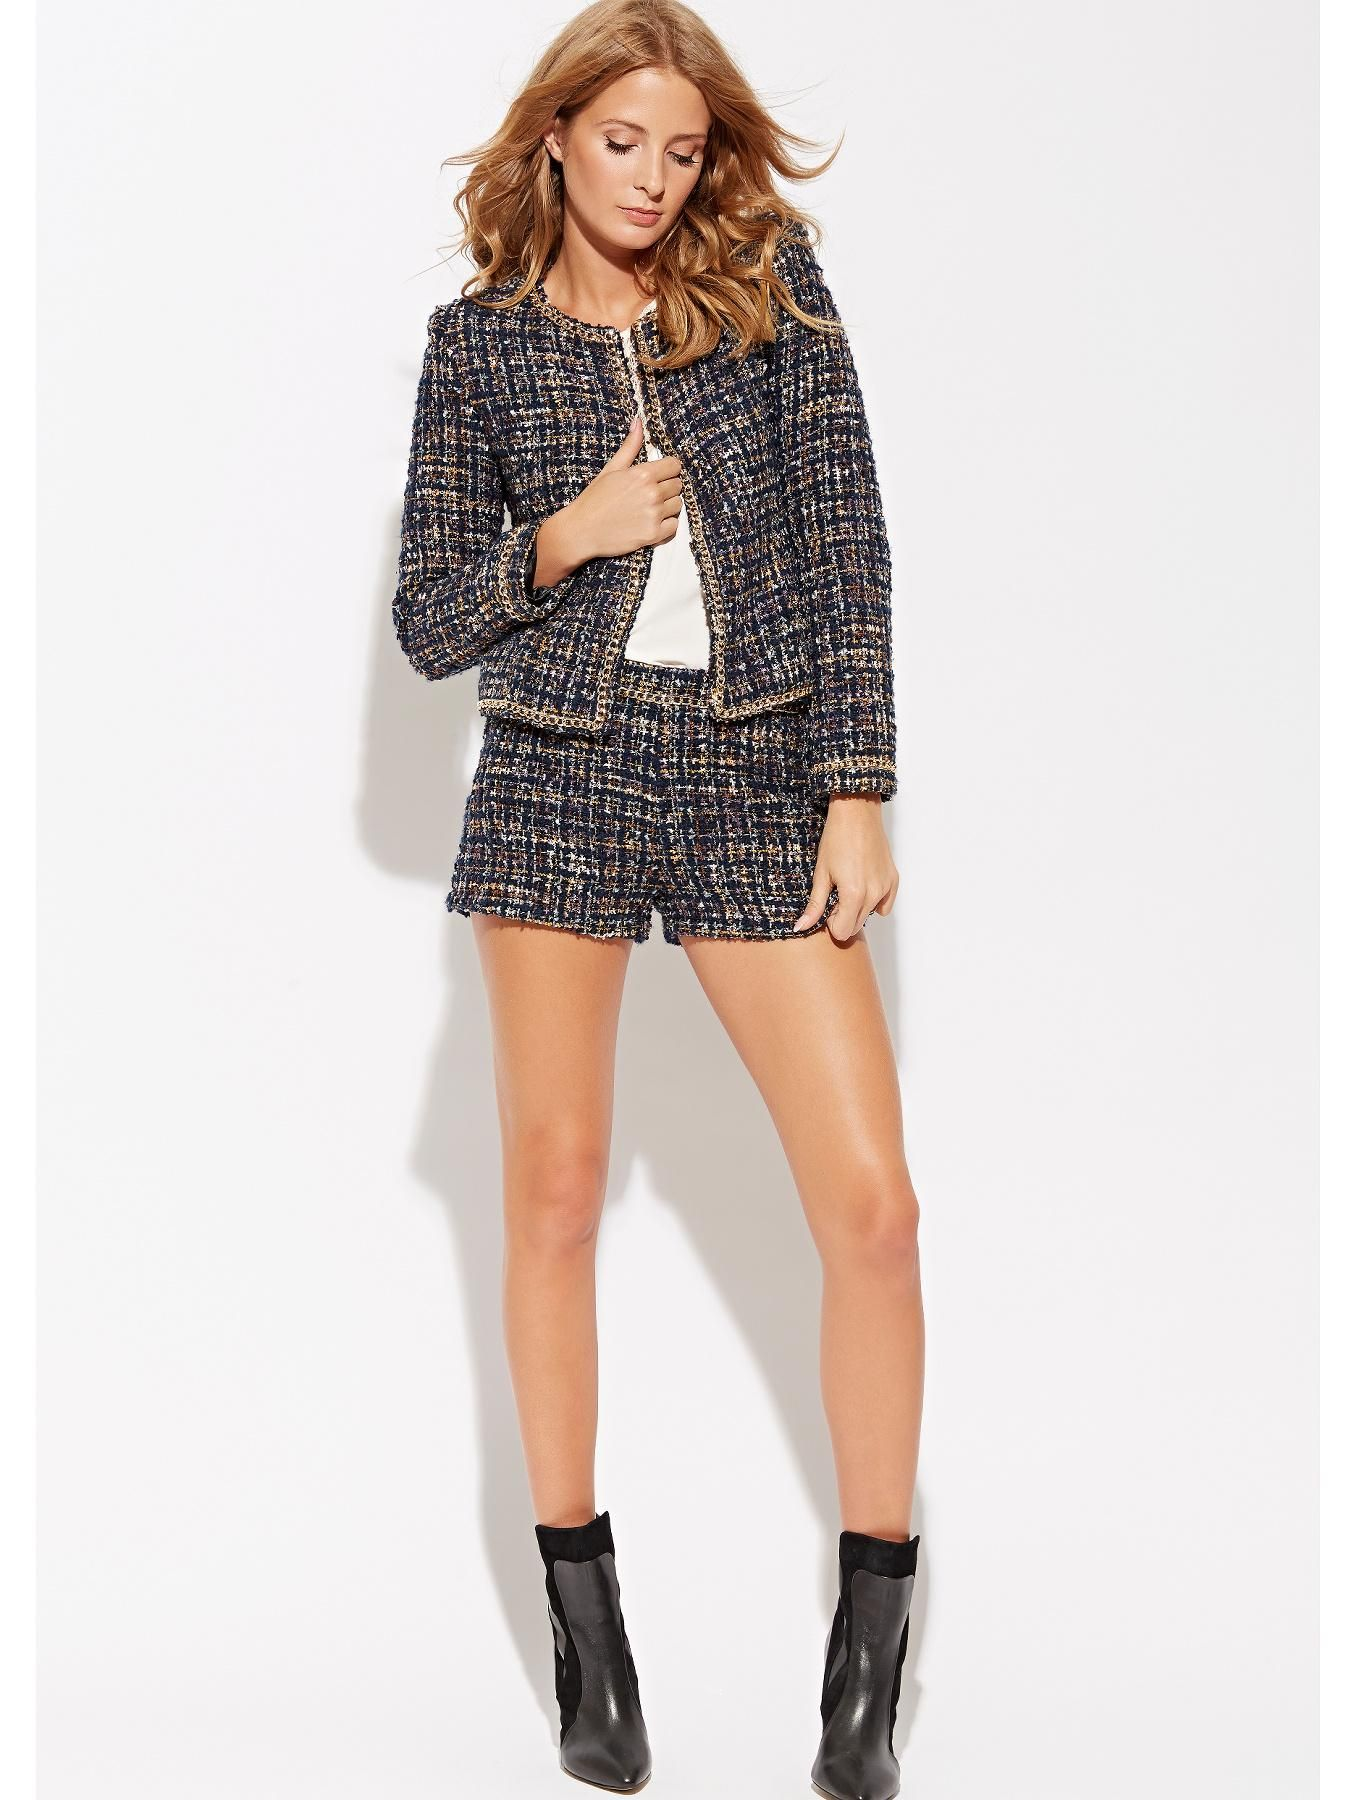 ead13ba1 How gorgeous is this tweed co-ord set with gold trim? Millie Mackintosh  Tweed Jacket | very.co.uk